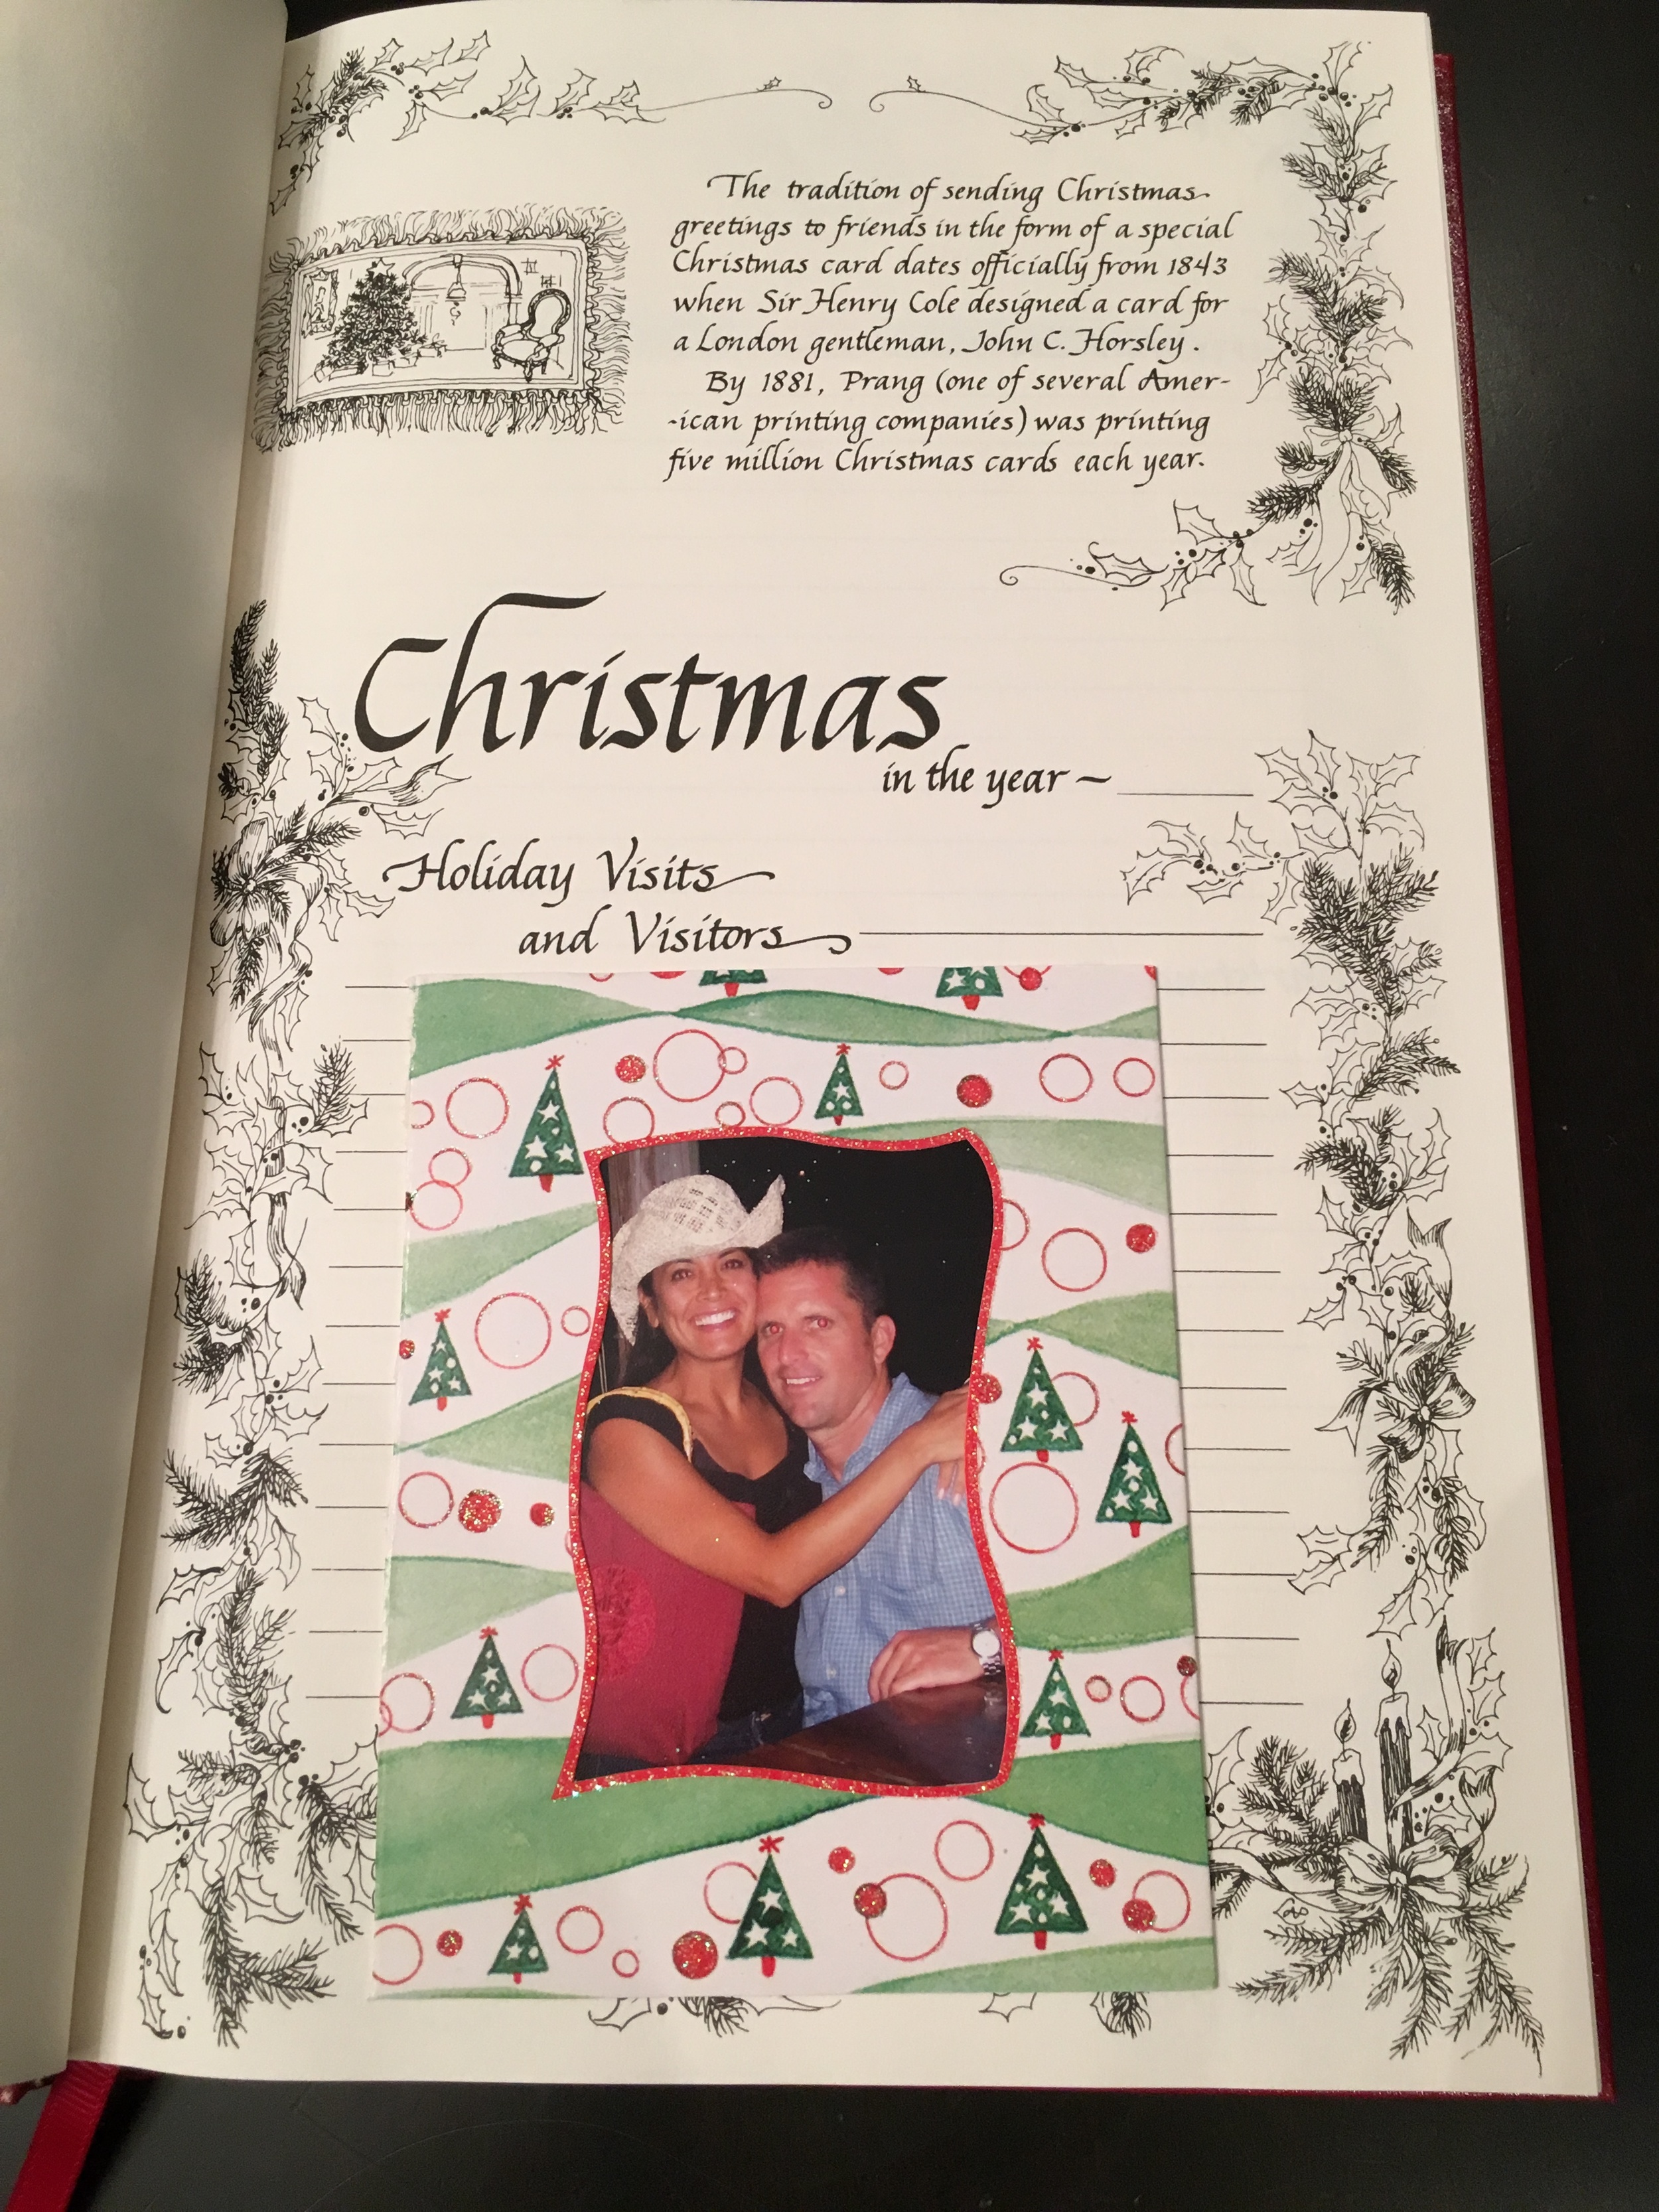 My first entry of our Christmas Book is when I used to print copies of the photo and insert in the sleeves. Ah, the days of having that time to do that! Notice how I skip over the pre-written prompts by sticking the card right over the lines of the book. I started writing the details of the Christmases in 2013 so the pages prior only have a copy of our Christmas cards.